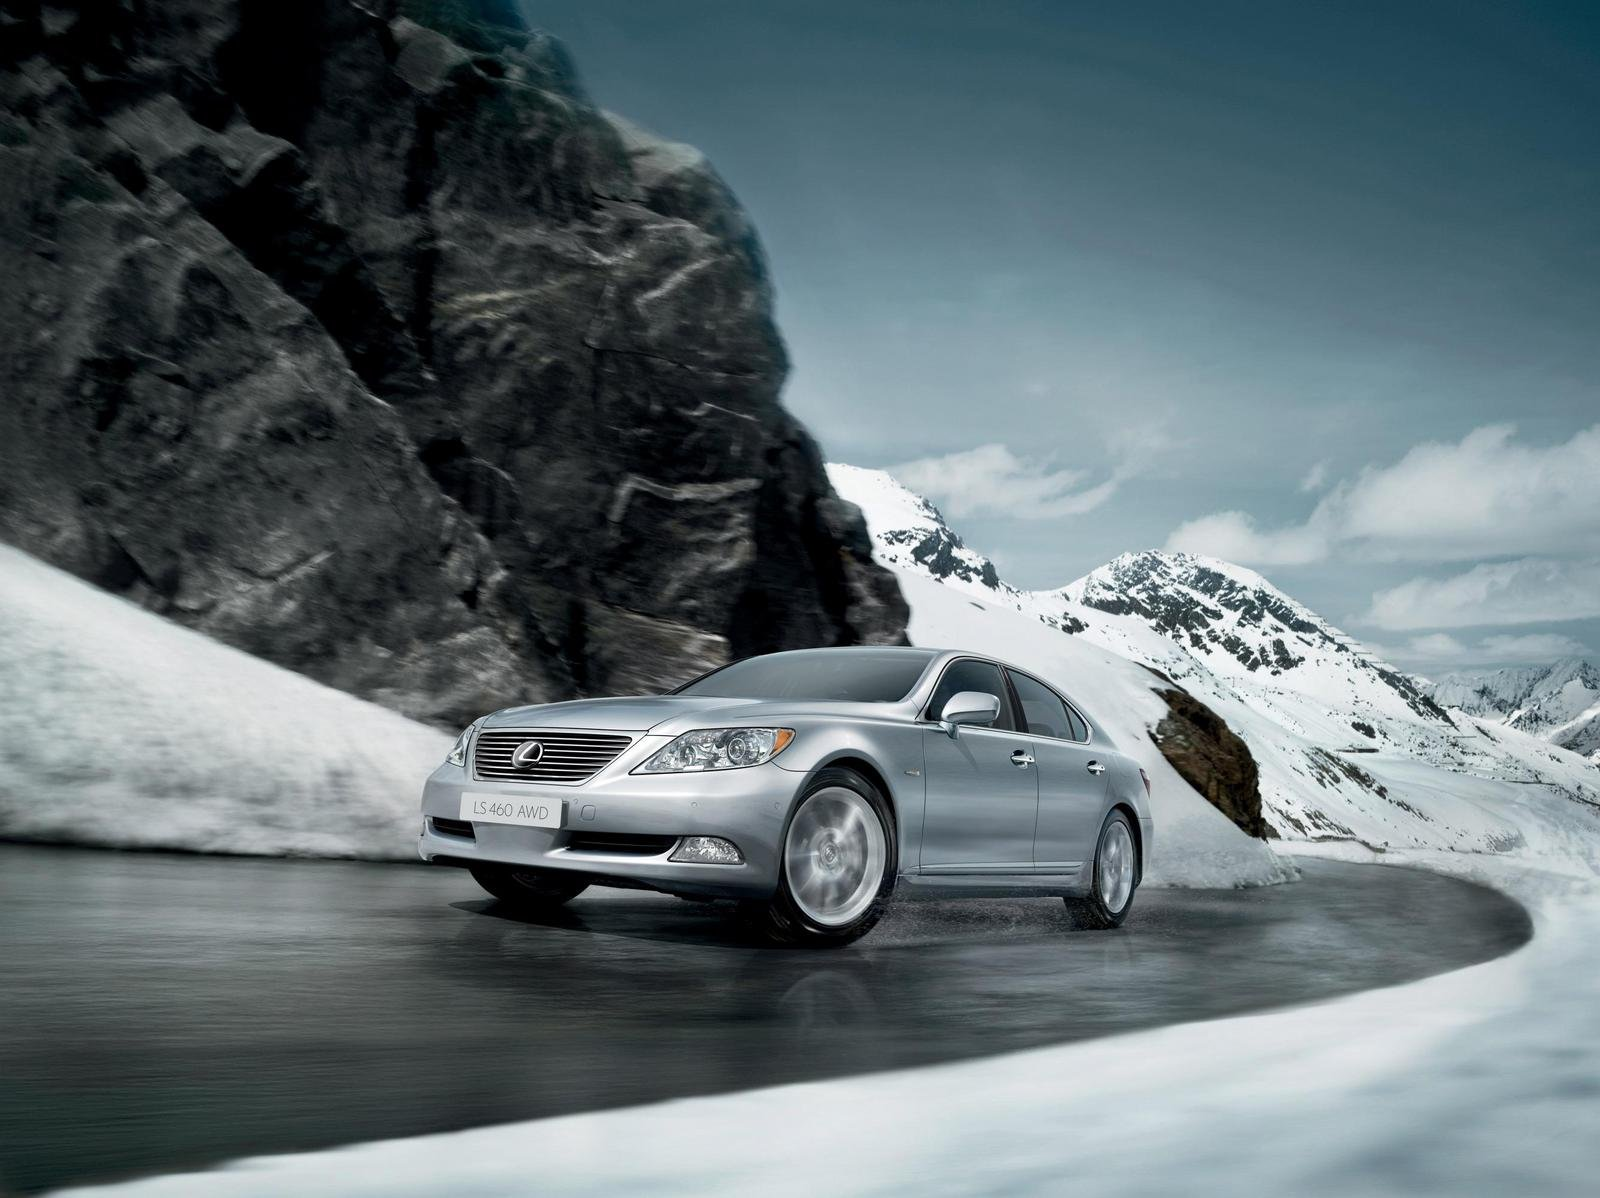 2009 lexus ls 460 awd review top speed. Black Bedroom Furniture Sets. Home Design Ideas